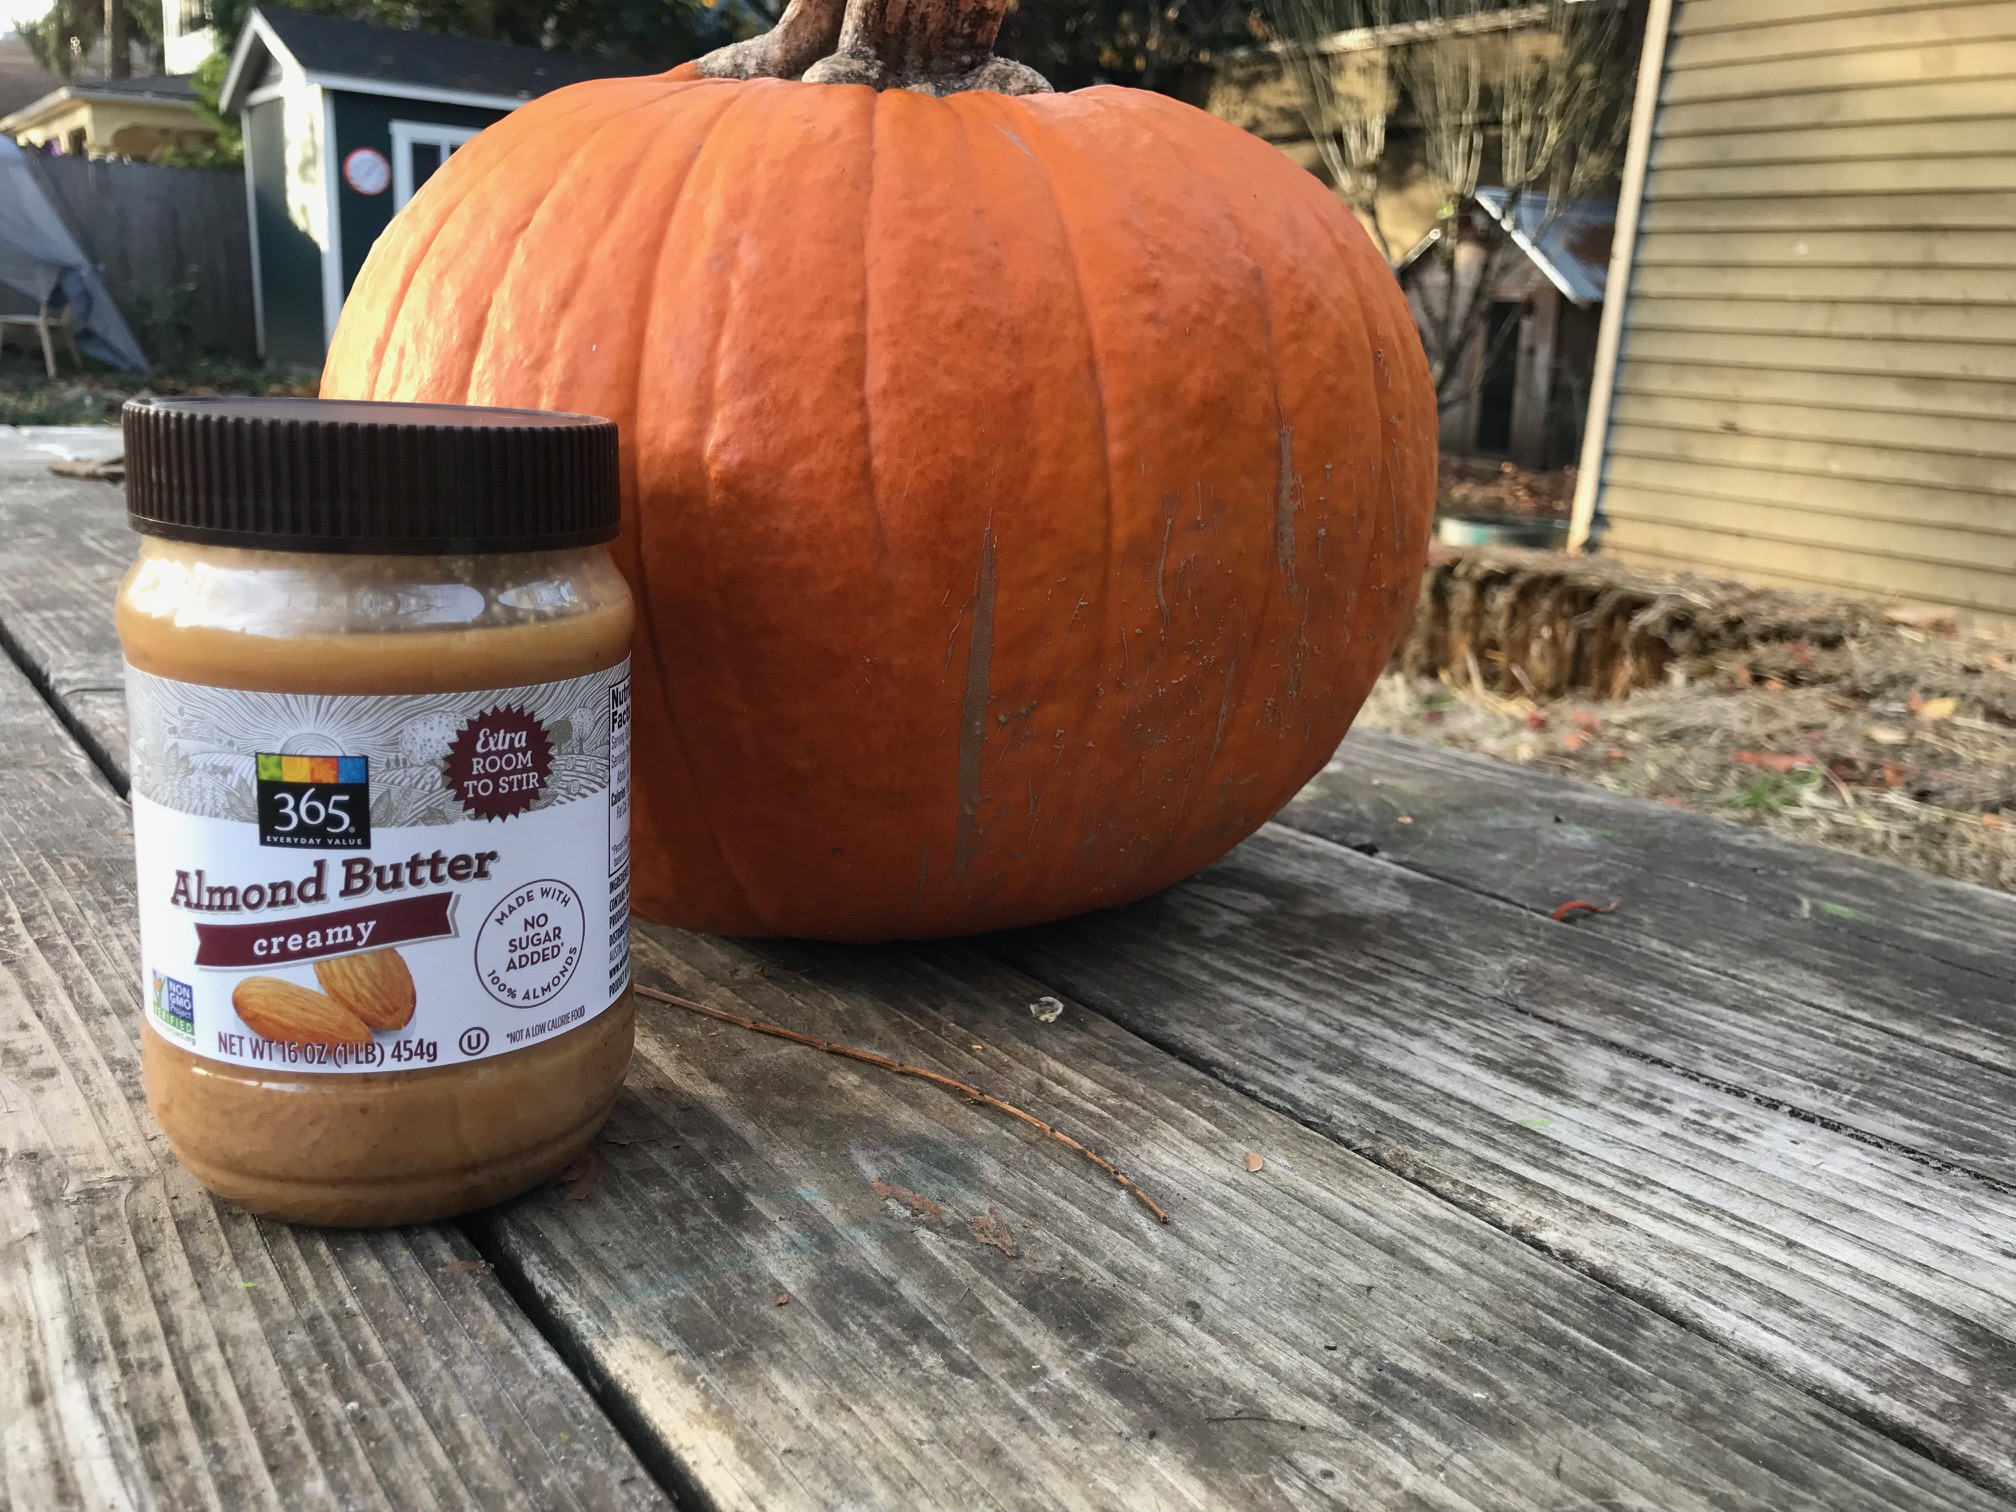 """Antimony (Sb) Found in Plastic Jar for """"365"""" Whole Foods Brand Almond Butter"""